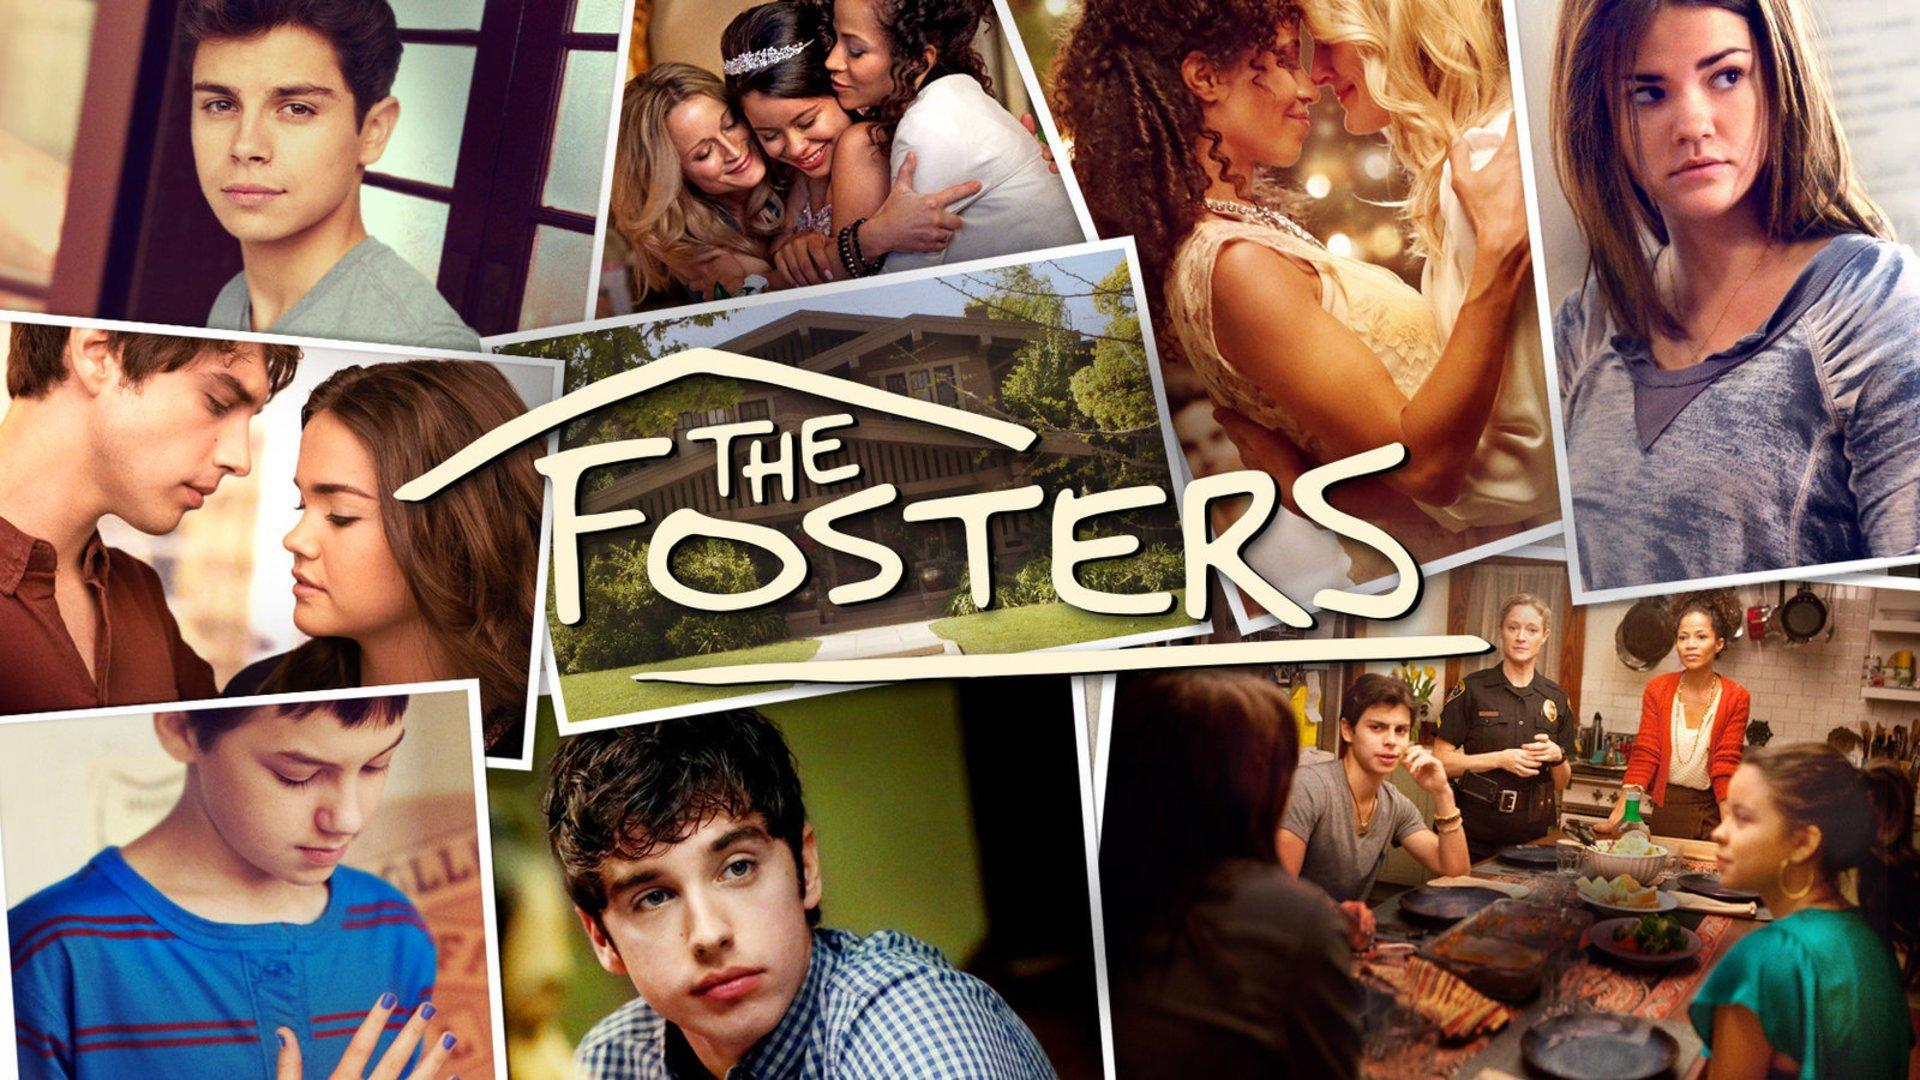 Image For Watch The Fosters Season 5's Linkedin Activity - Fosters Season 4 Poster , HD Wallpaper & Backgrounds